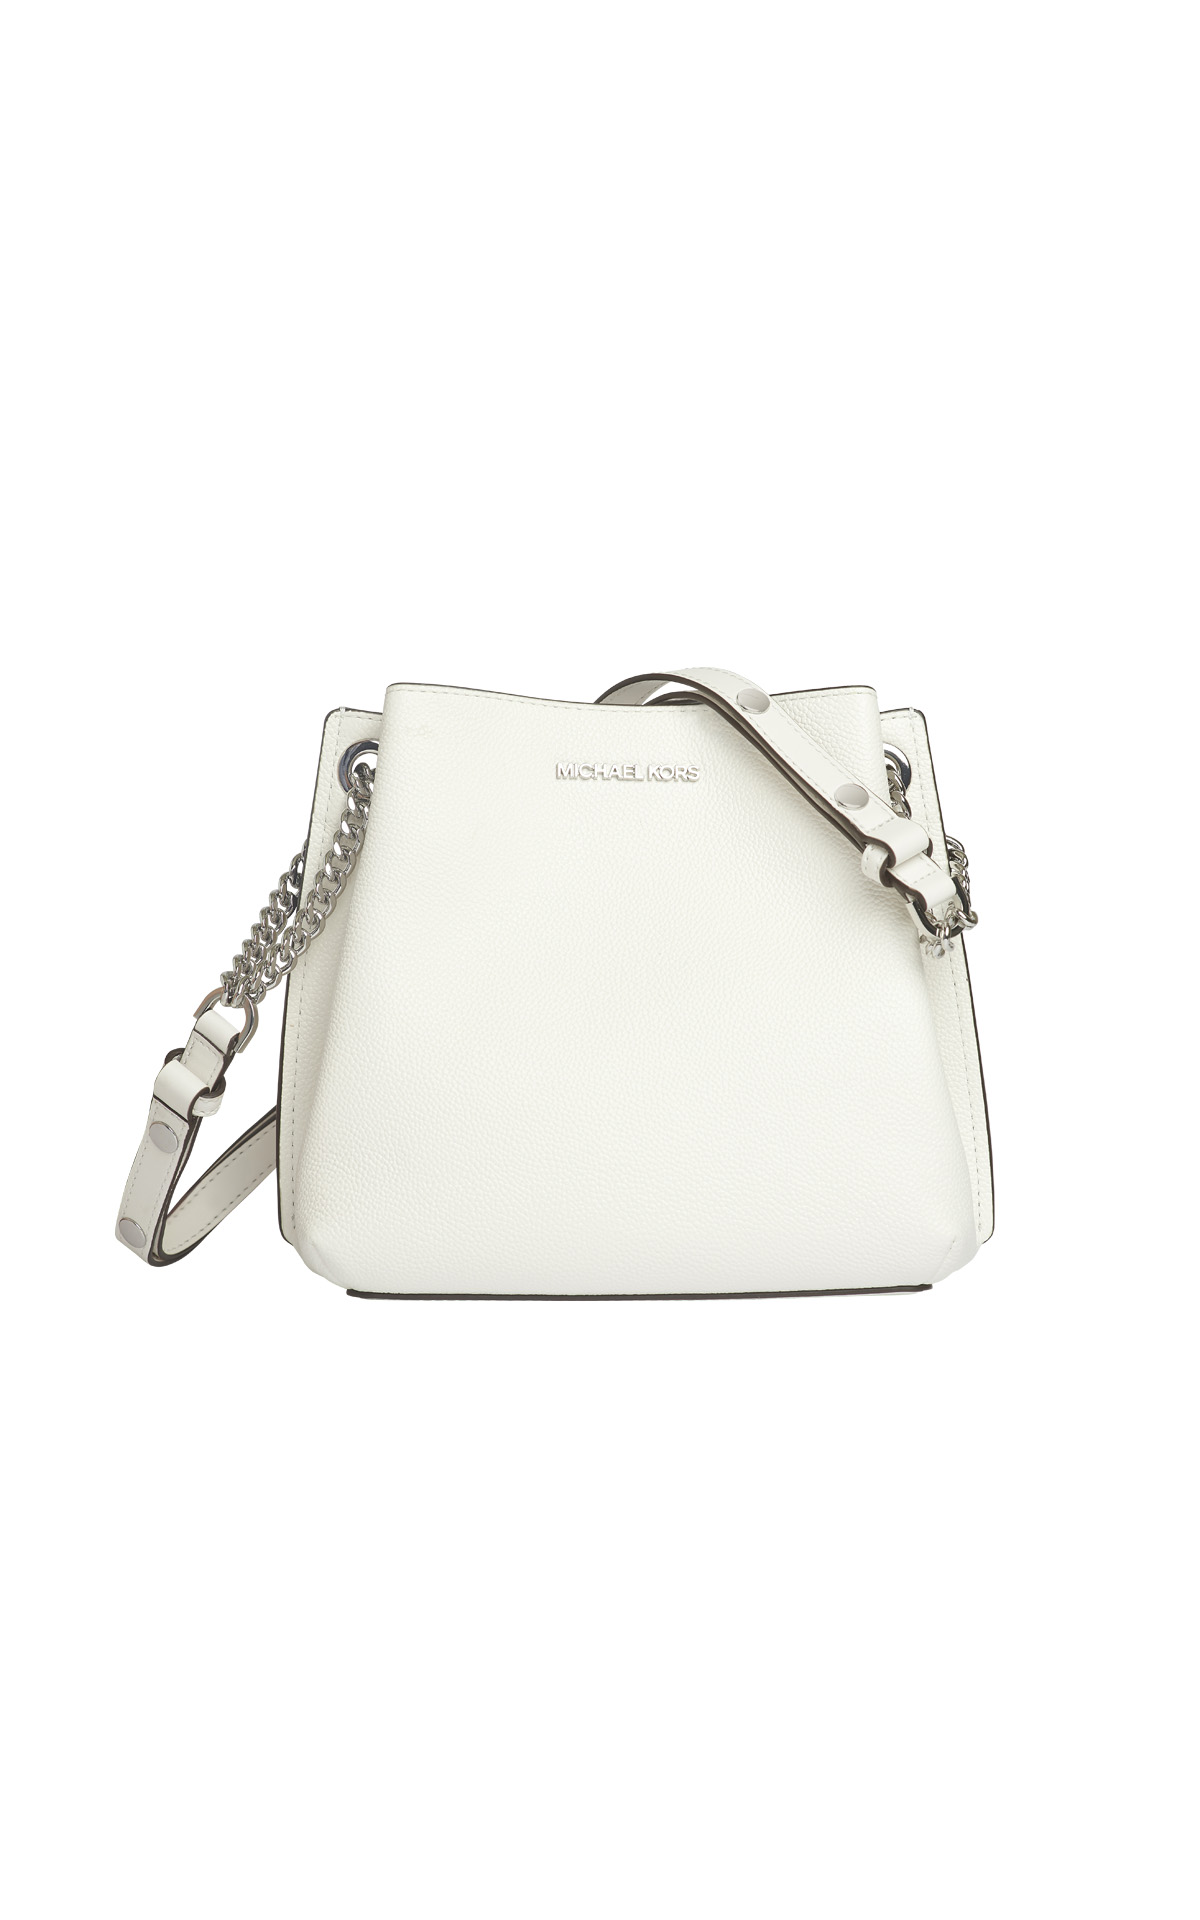 White bucket bag Michael Kors